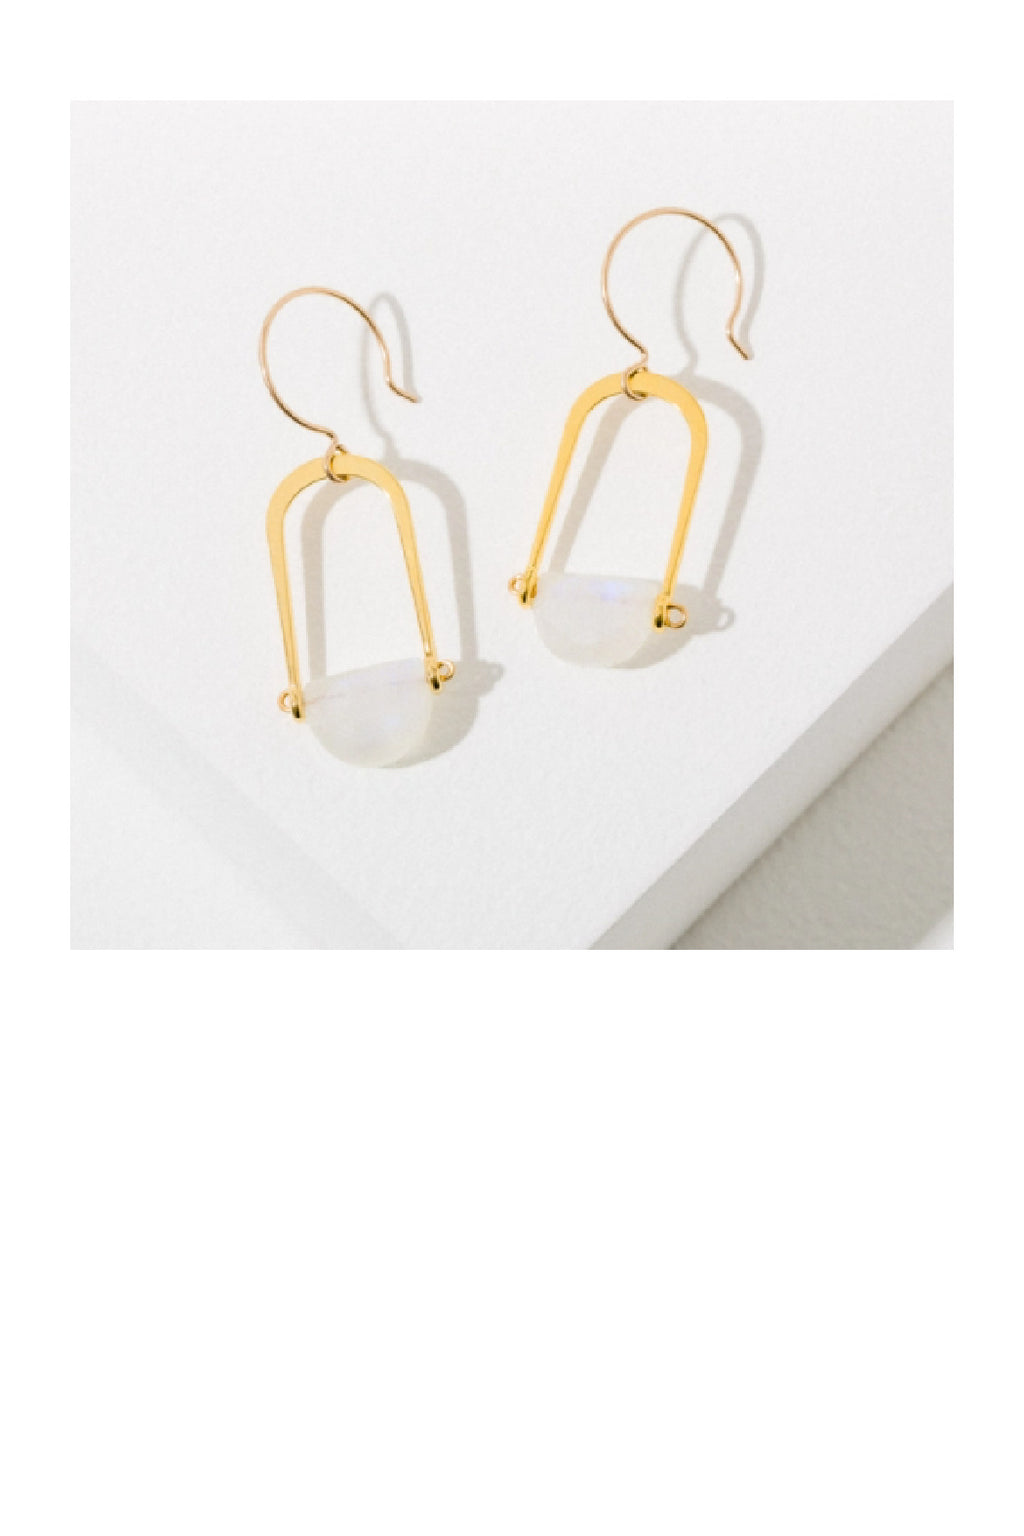 Larissa Loden Teara Earrings - Moonstone